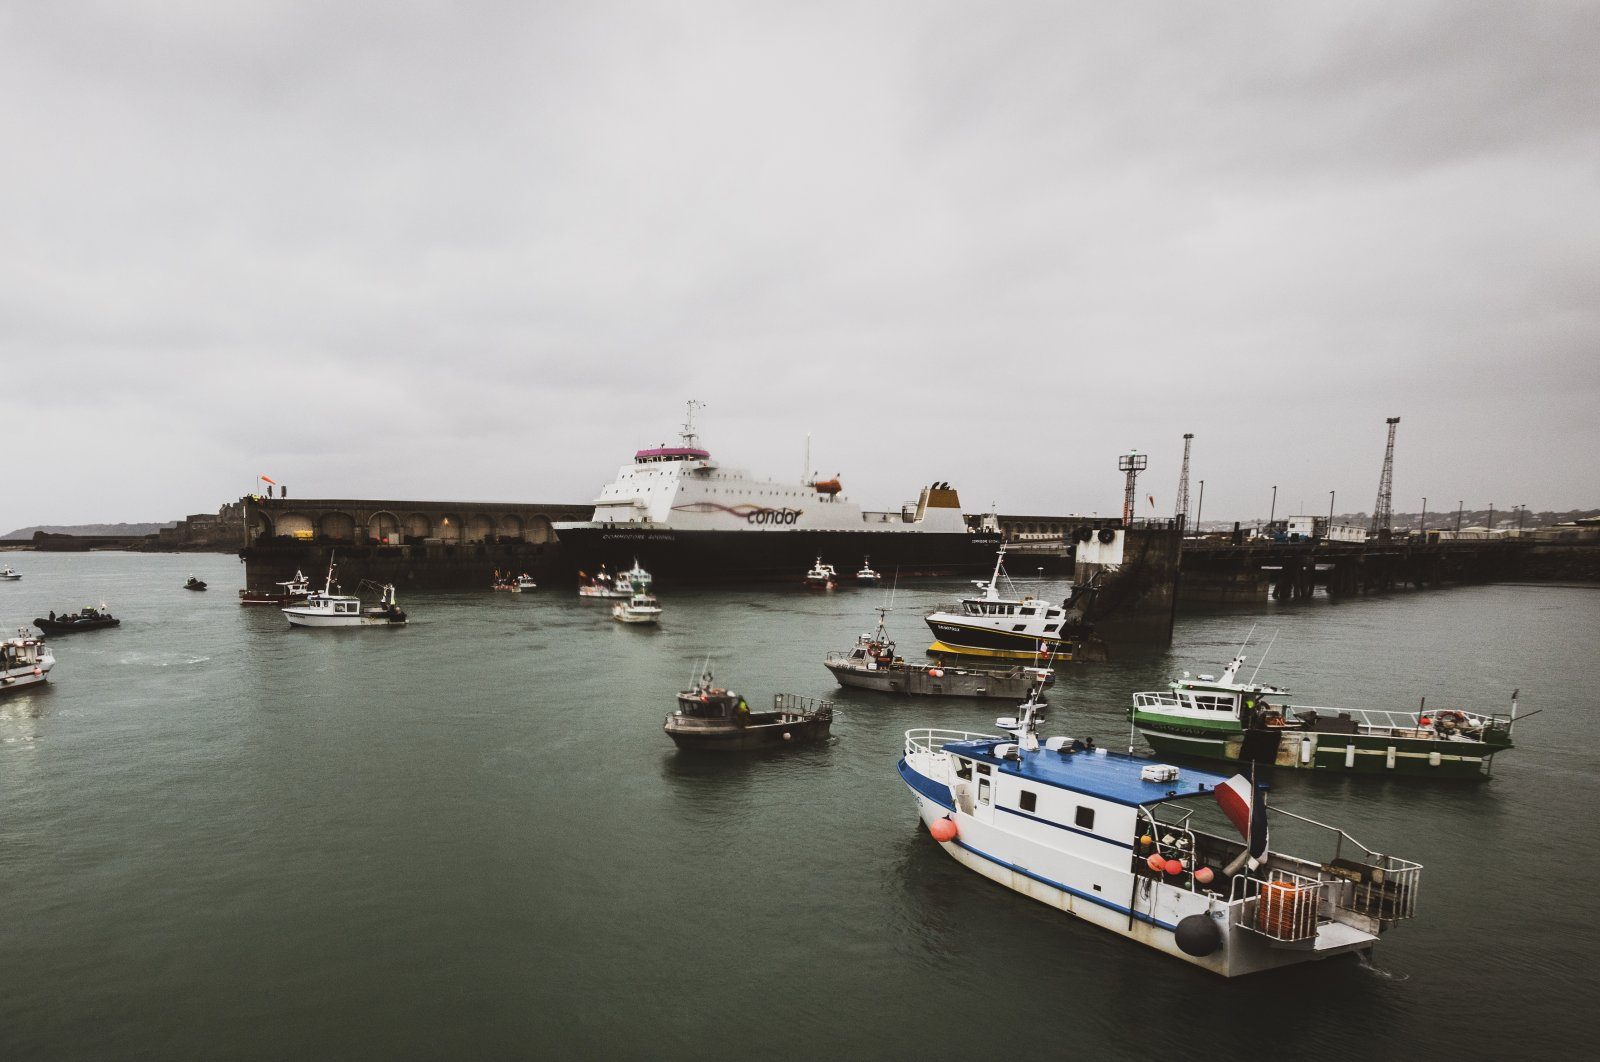 French fishing vessels block the port of St. Helier in Jersey, Thursday, May 6, 2021. (Oliver Pinel via AP)